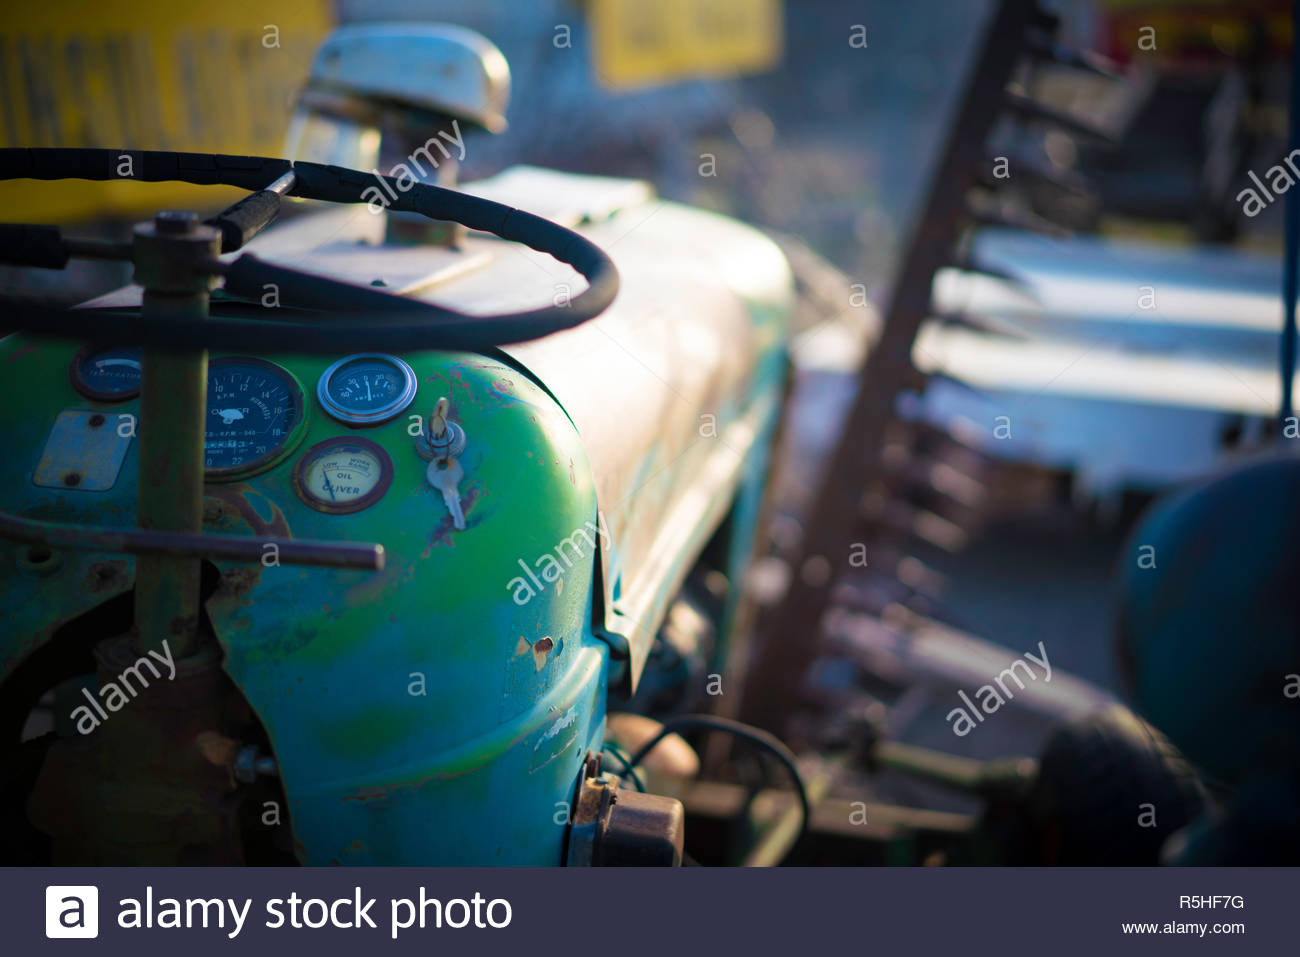 antique tractor gauges stock photos antique tractor gauges stock Tractor Lift Pump old worn green tractor with analog gauges and shallow depth of field stock image